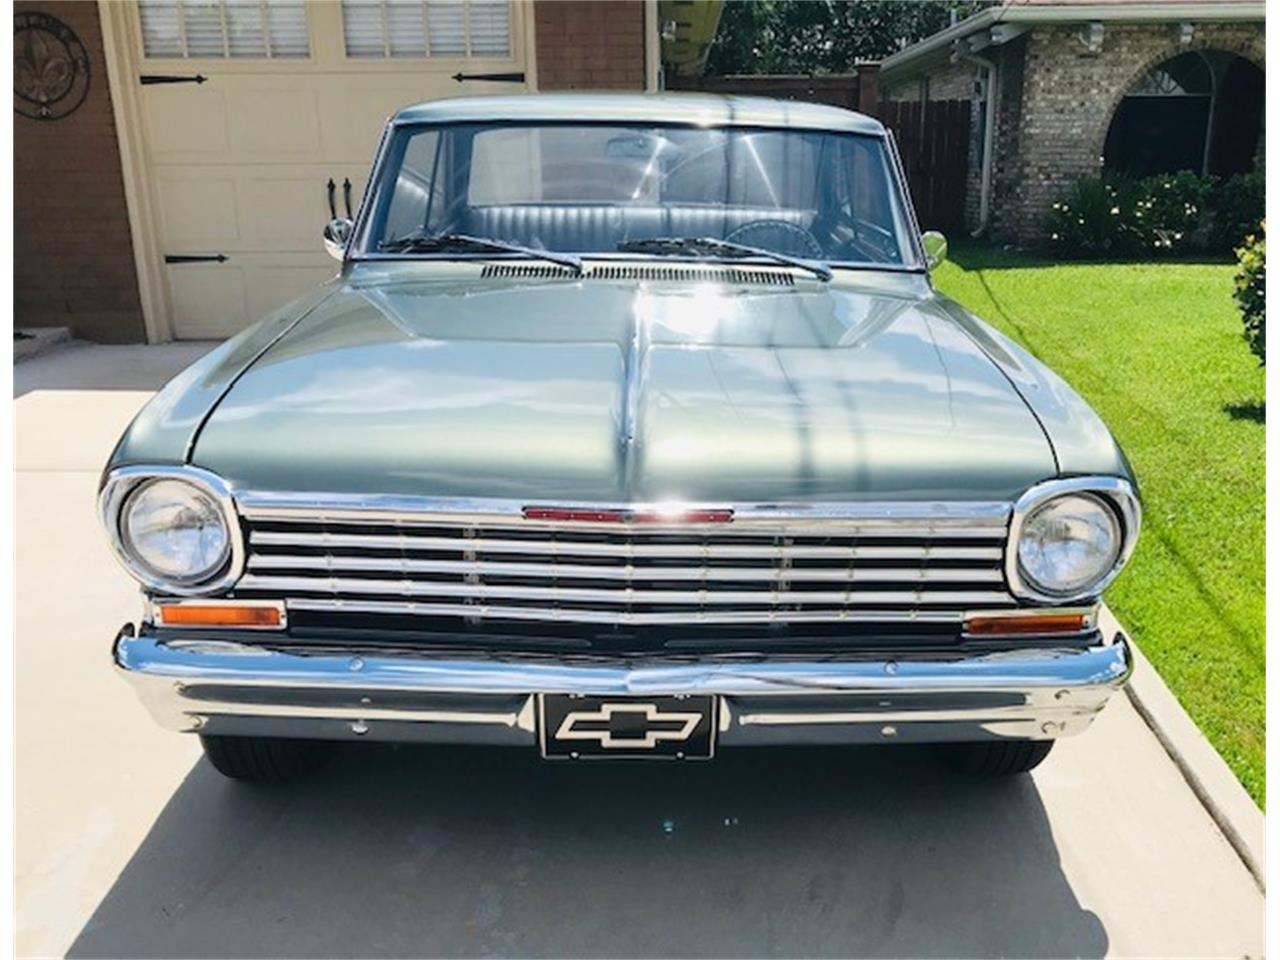 1963 Chevrolet Chevy II Nova SS for sale in Metairie, LA – photo 4